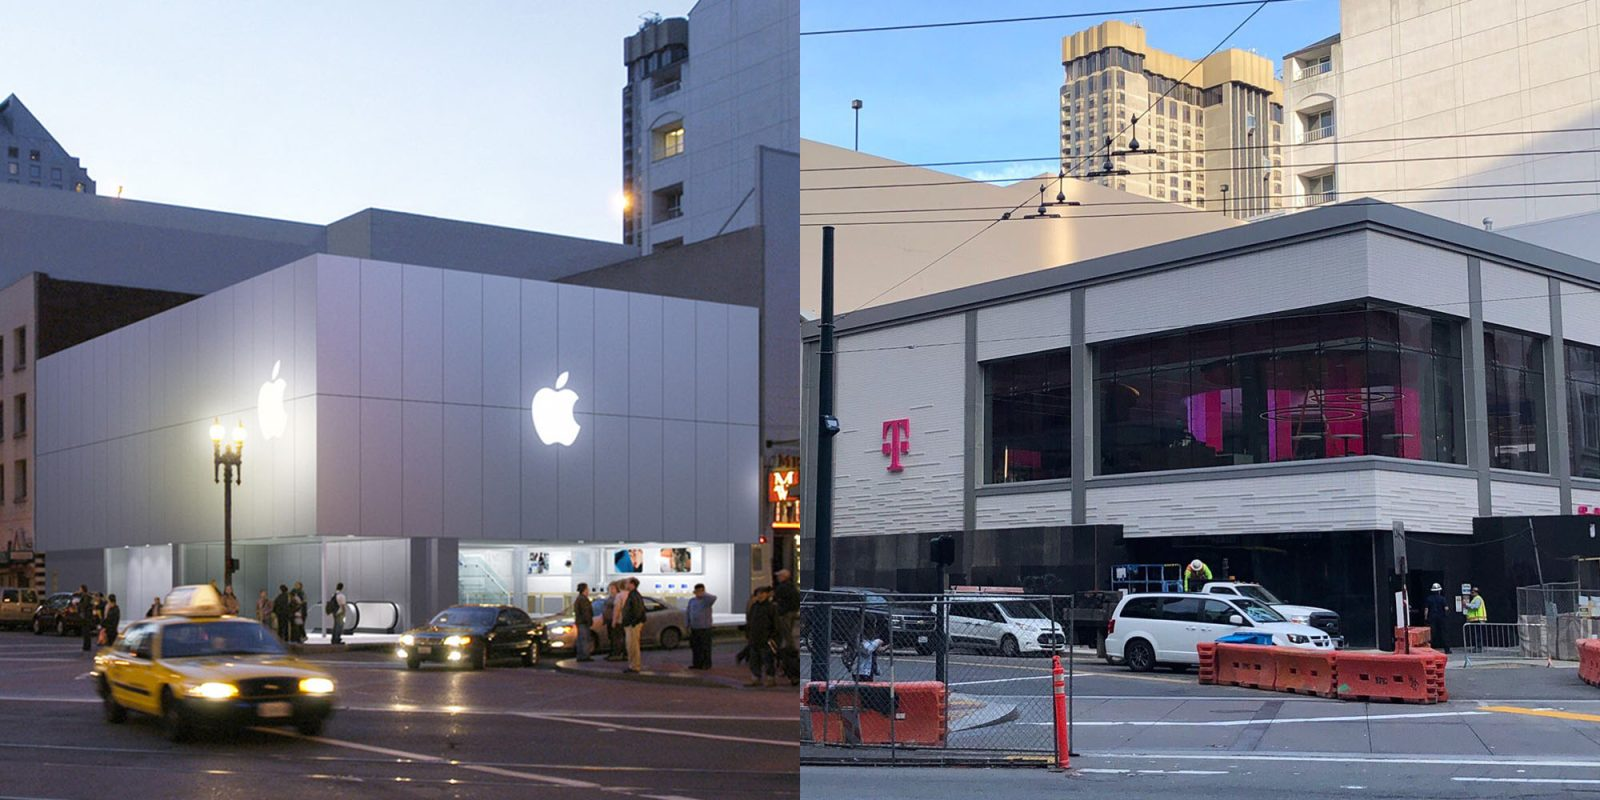 c5f9100c5 Apple's former retail stores: Where are they now? - 9to5Mac